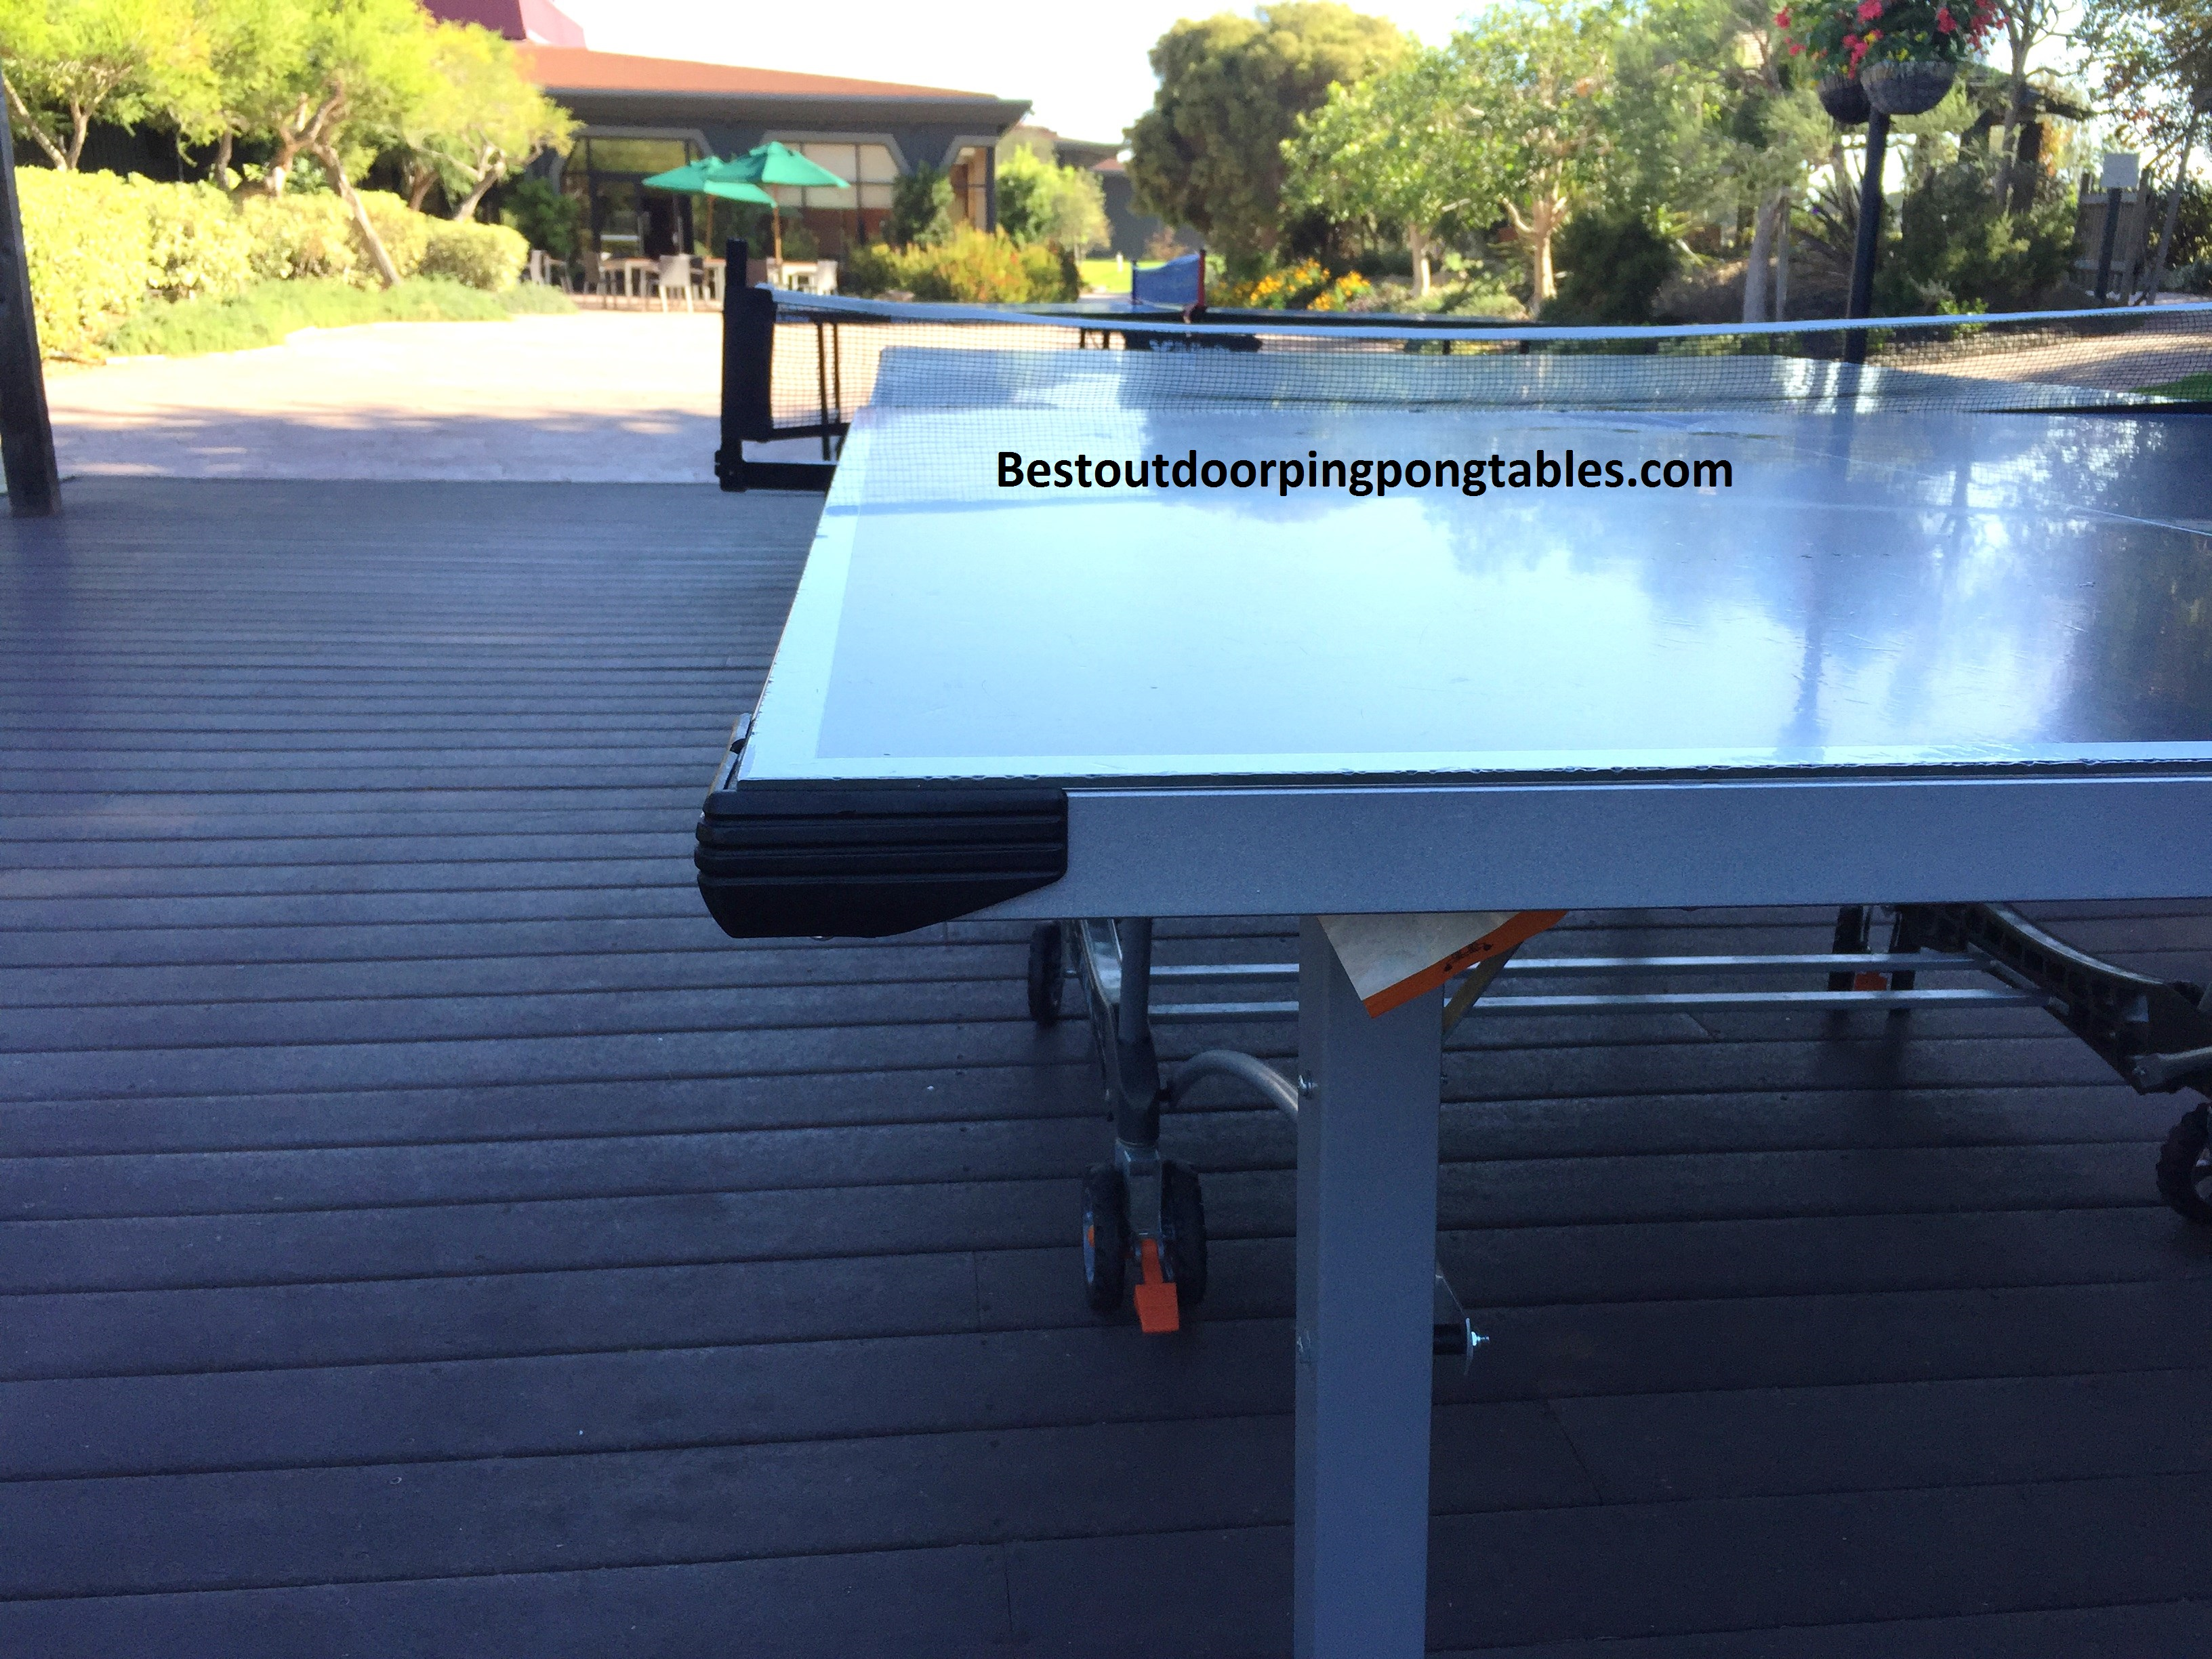 Weatherproof Ping Pong Table ... these features if you have little kids running around the table